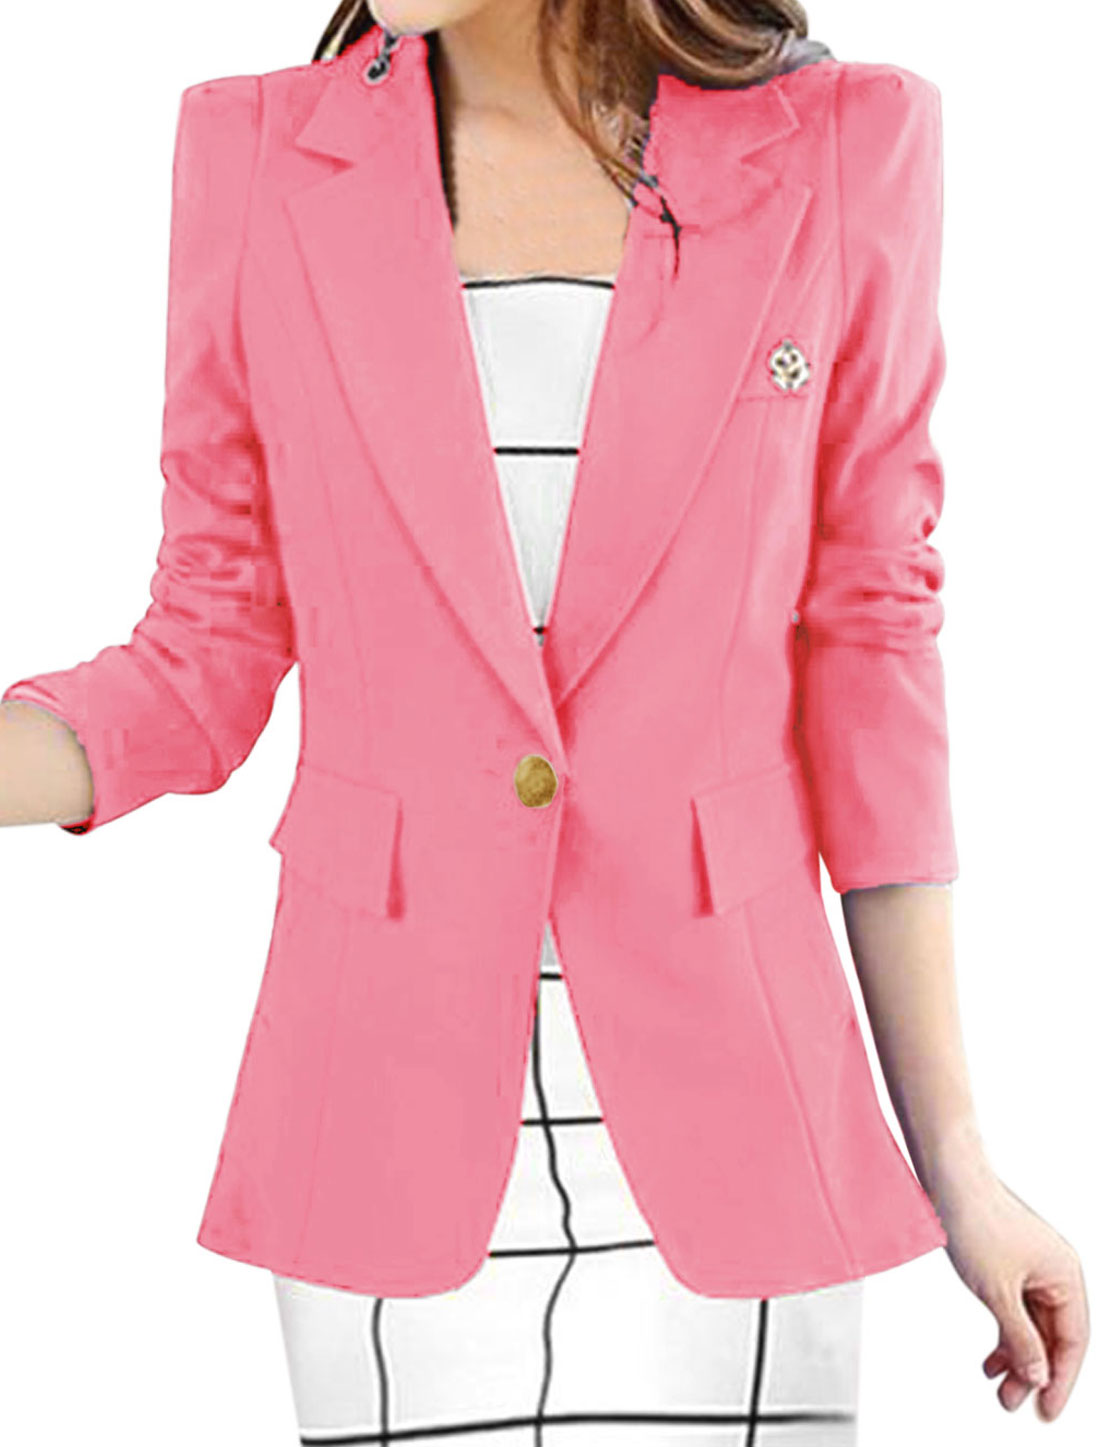 Lady Notched Lapel Double Slant Pockets Leisure Blazer Pink L